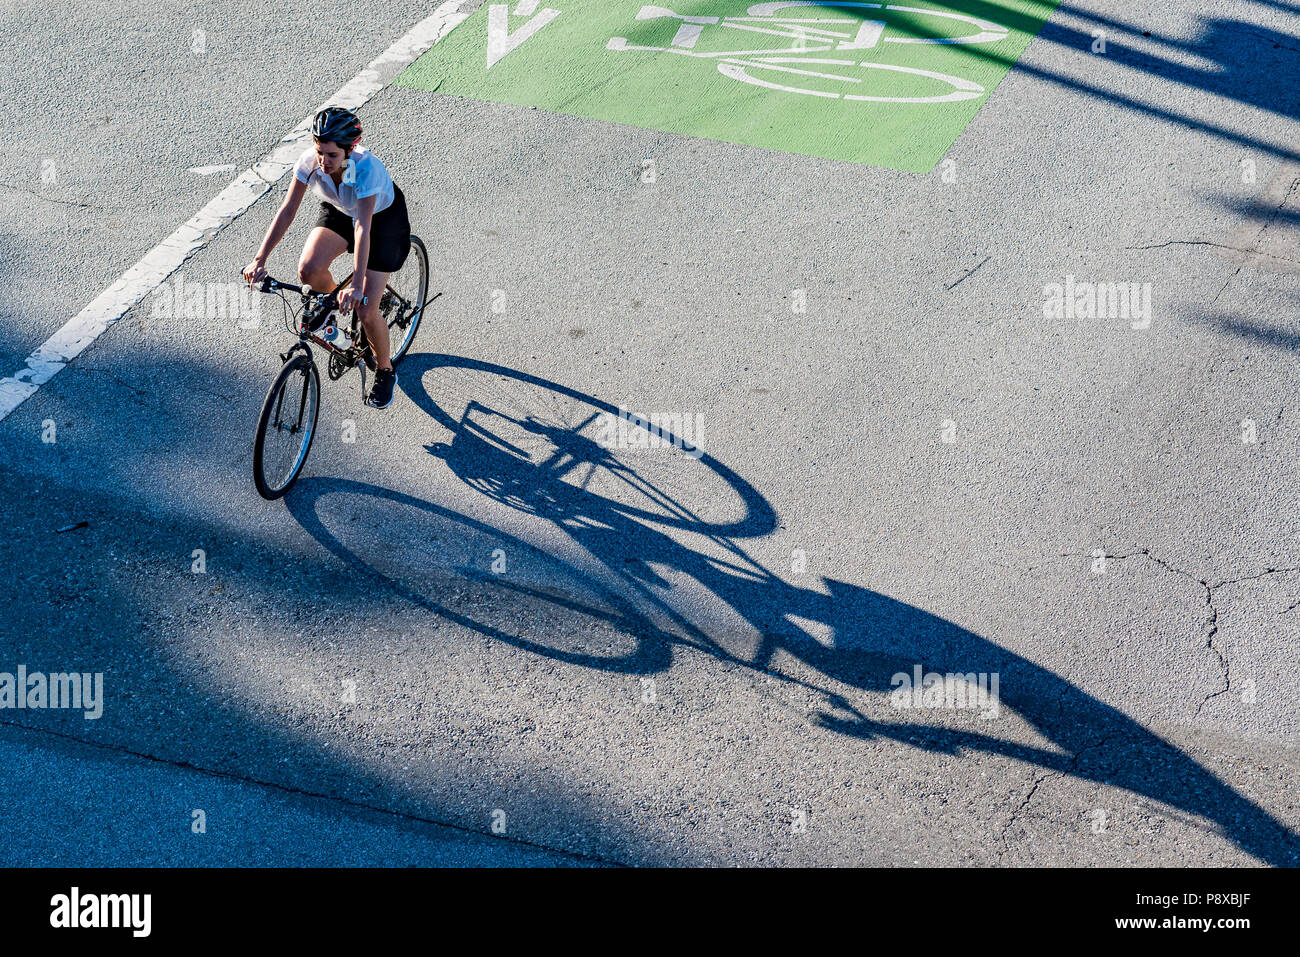 Cyclist using dedicated bike lane, Vancouver, British Columbia, Canada. - Stock Image